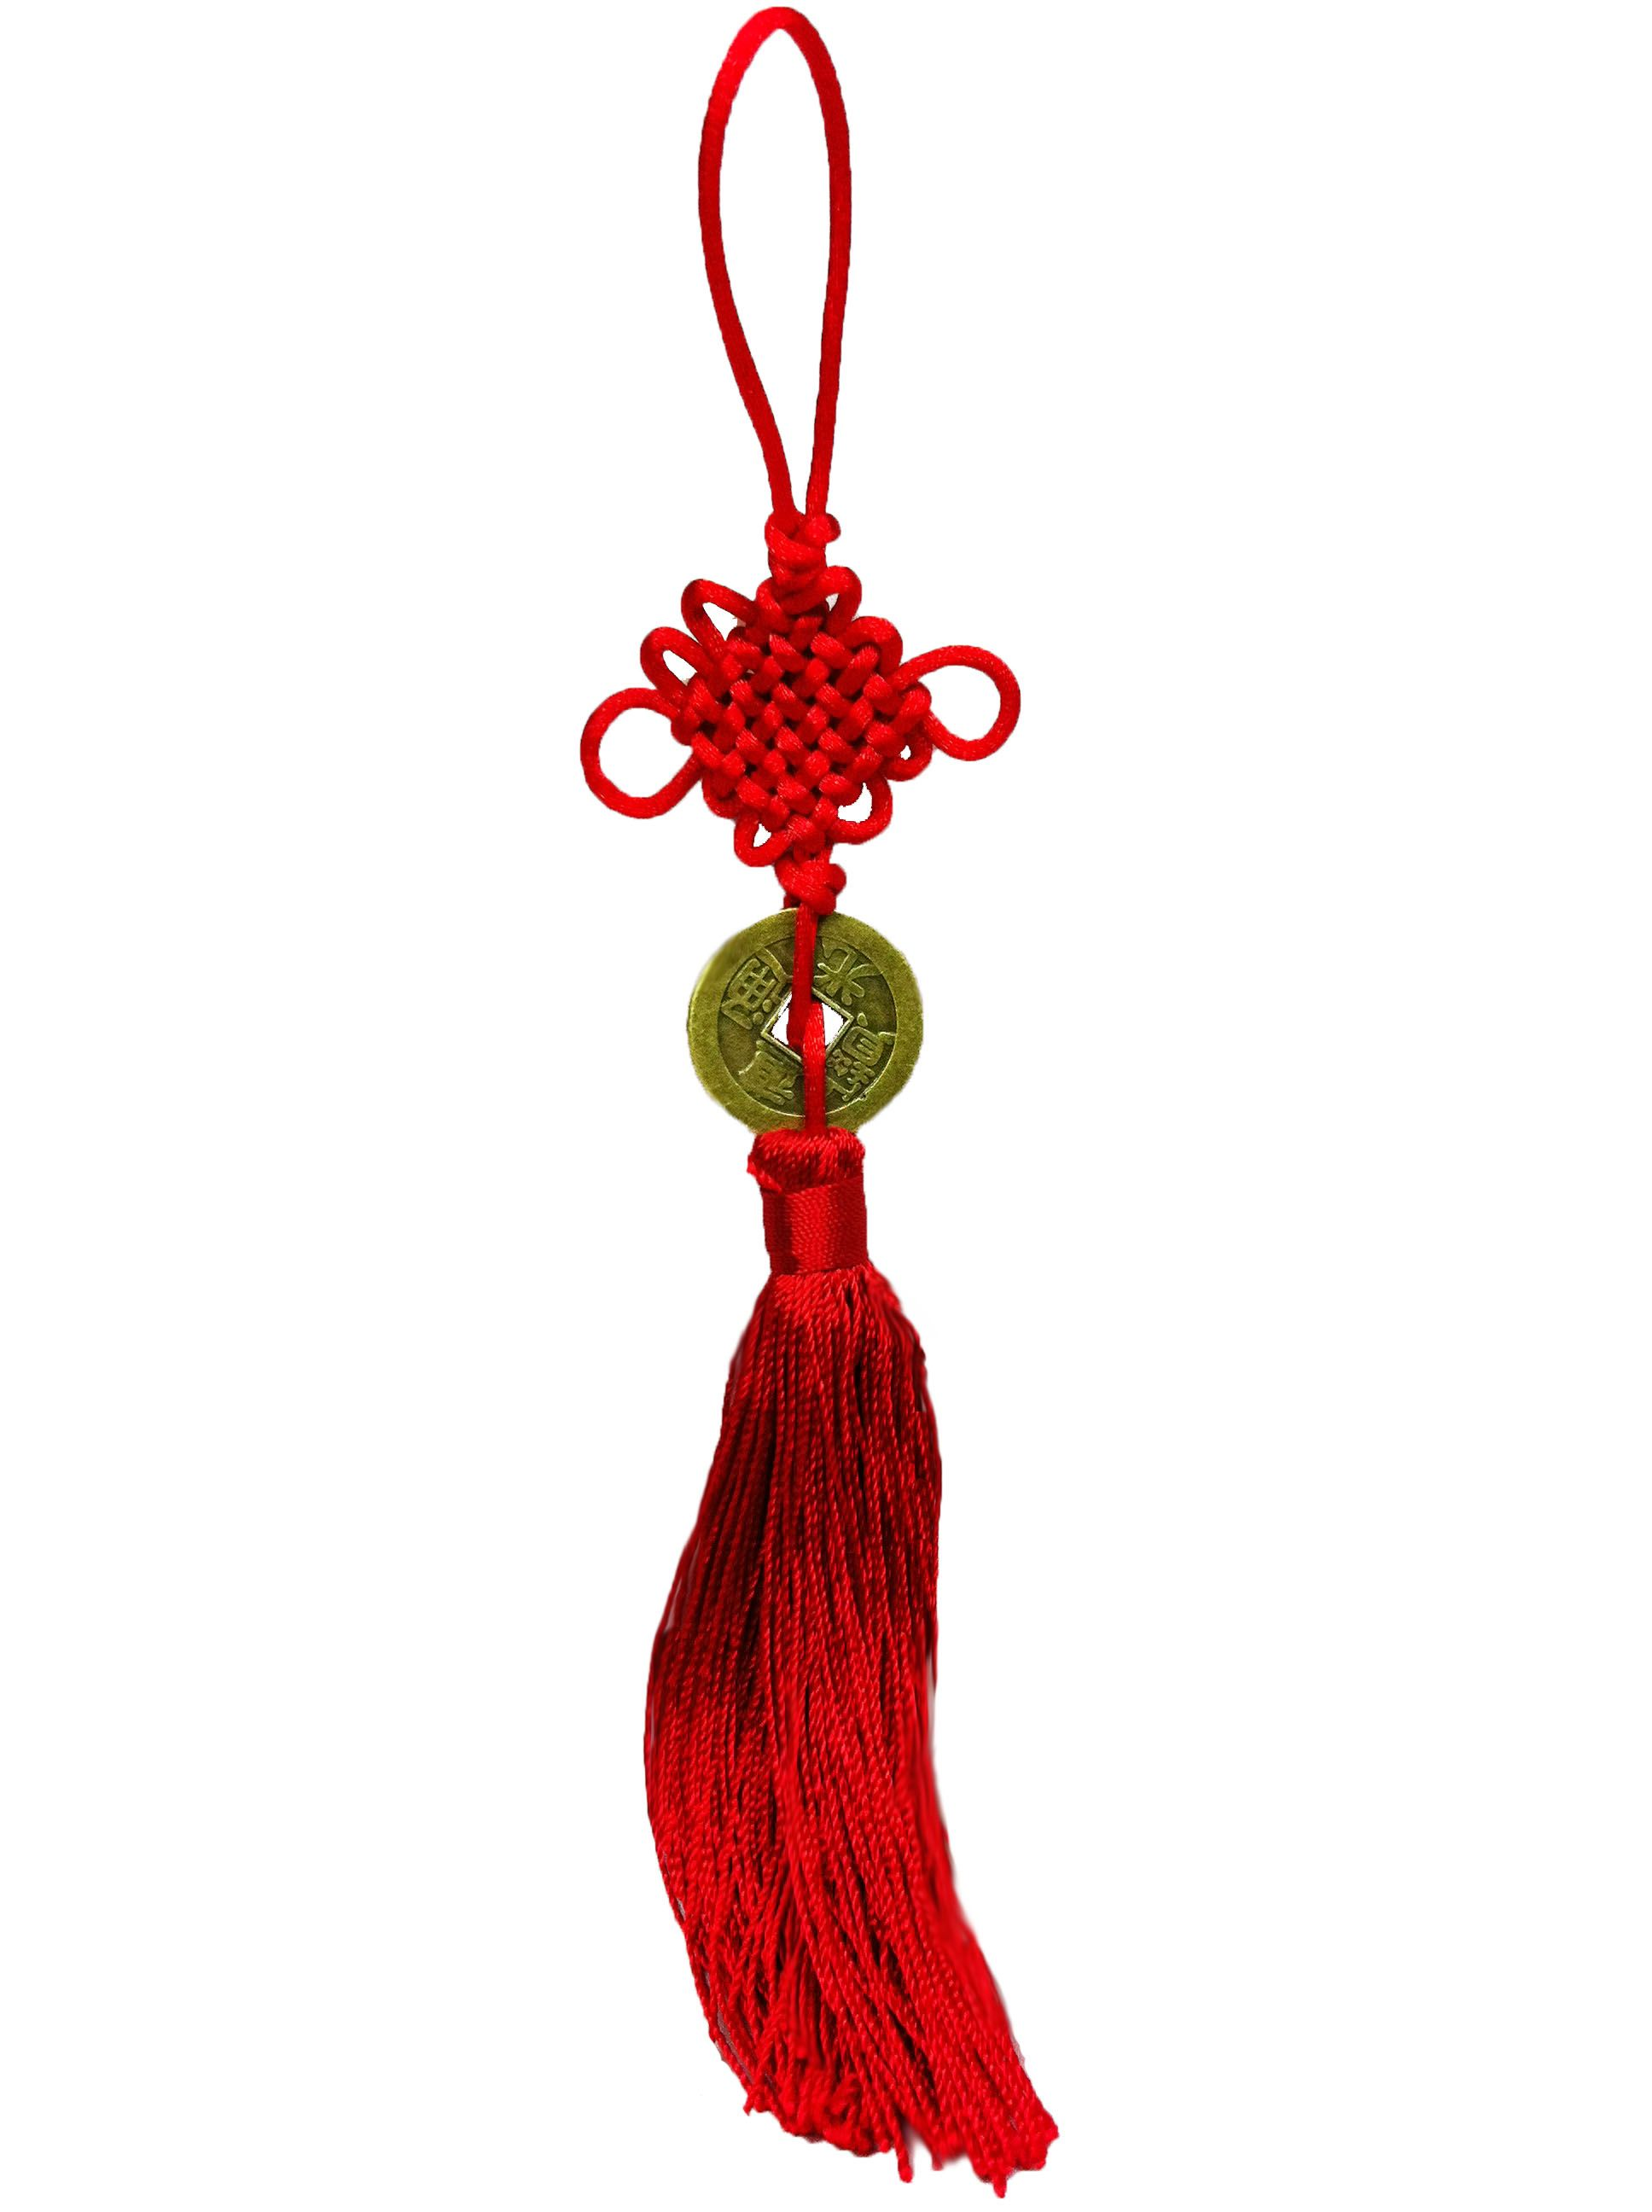 The mystic knot is one of the most often used symbols in feng shui being a combination of six times the infinity symbol this feng shui knot symbolizes a long and happy life full of good fortune biocorpaavc Choice Image